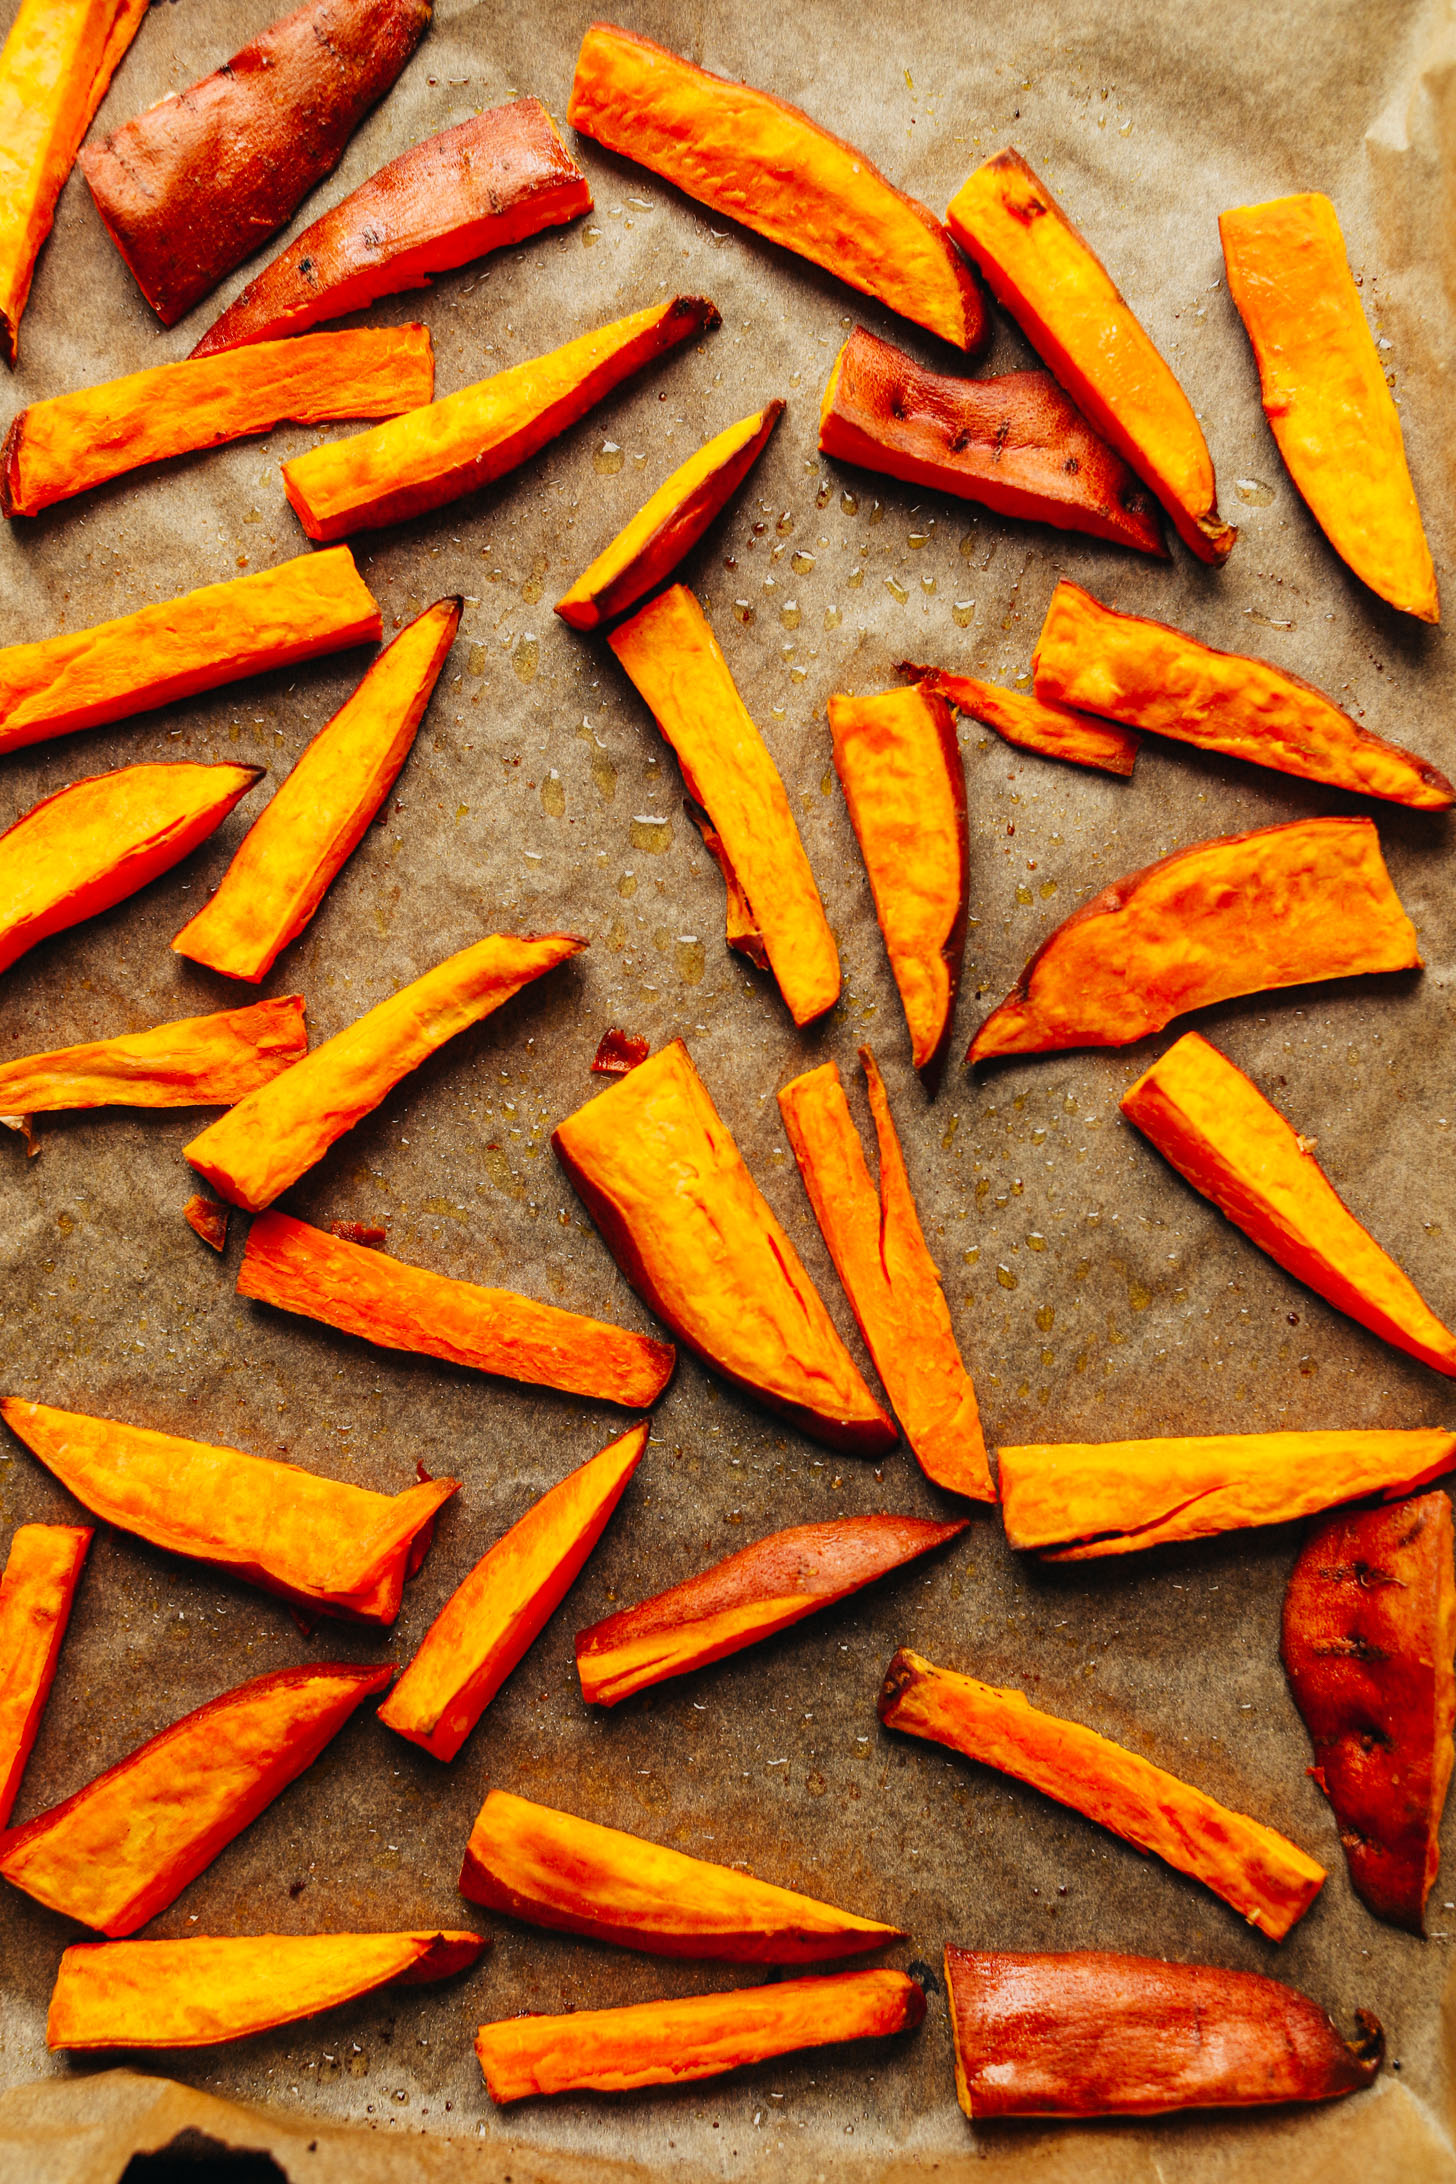 Freshly roasted sliced sweet potatoes on a parchment-lined baking sheet